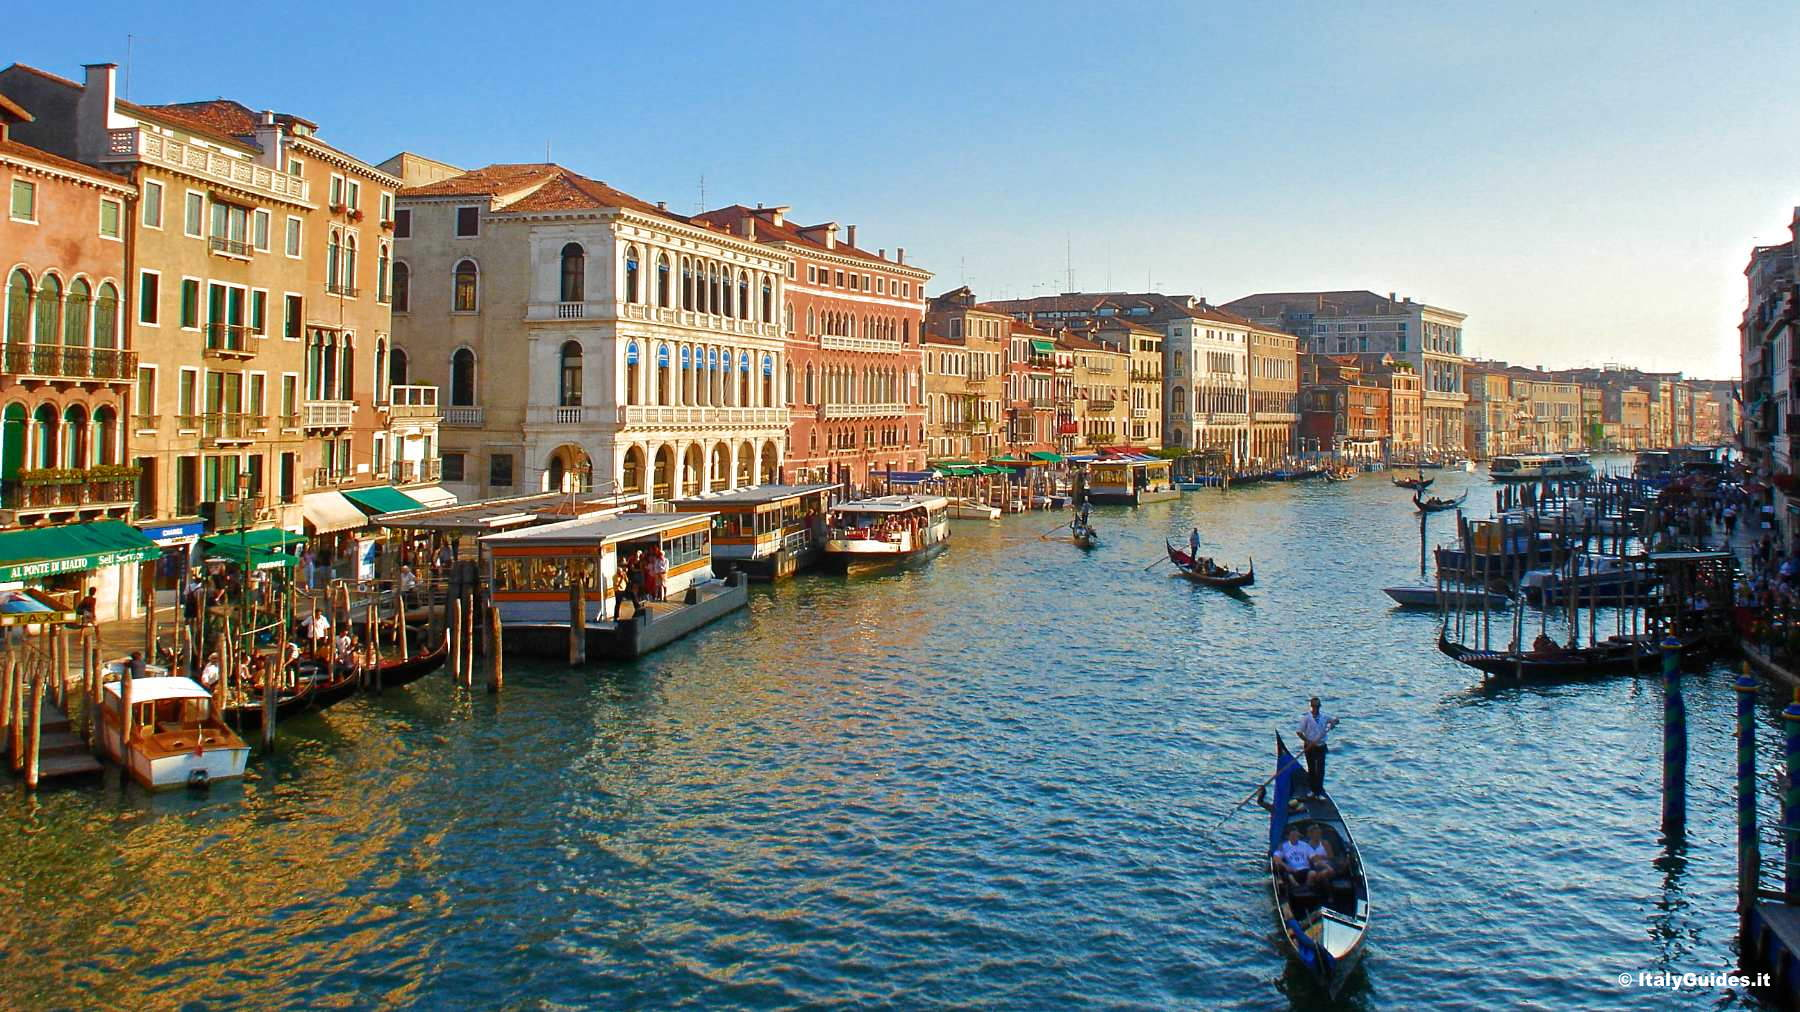 Rooms: Photo Gallery Of Venice, Italy